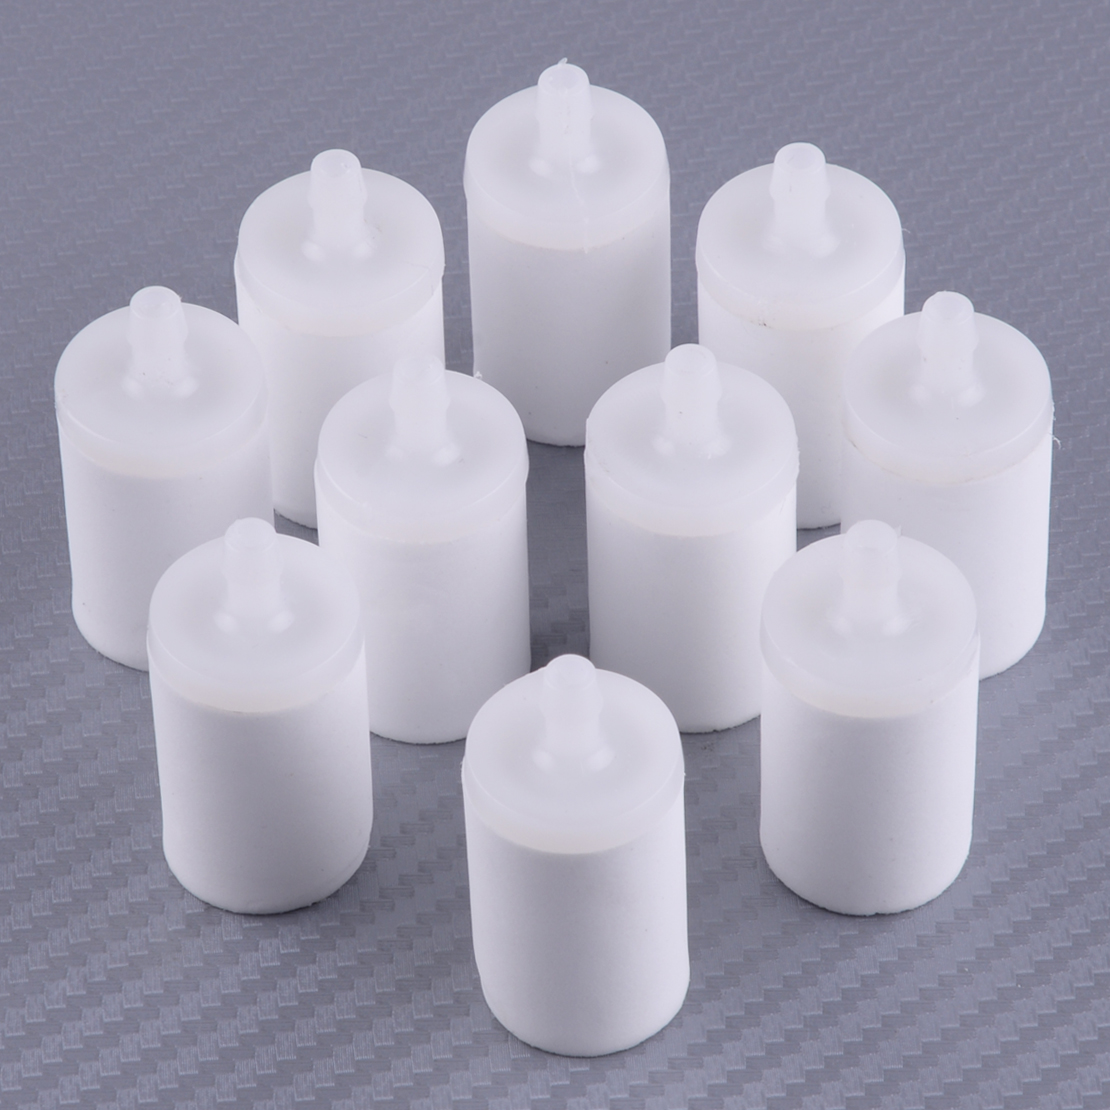 LETAOSK 10pcs Gas Fuel Filter Pick Up Body 503 44 32-01 Fit For Husqvarna Chainsaw 50 51 55 61 268 272 XP 345 350 351 353 Parts